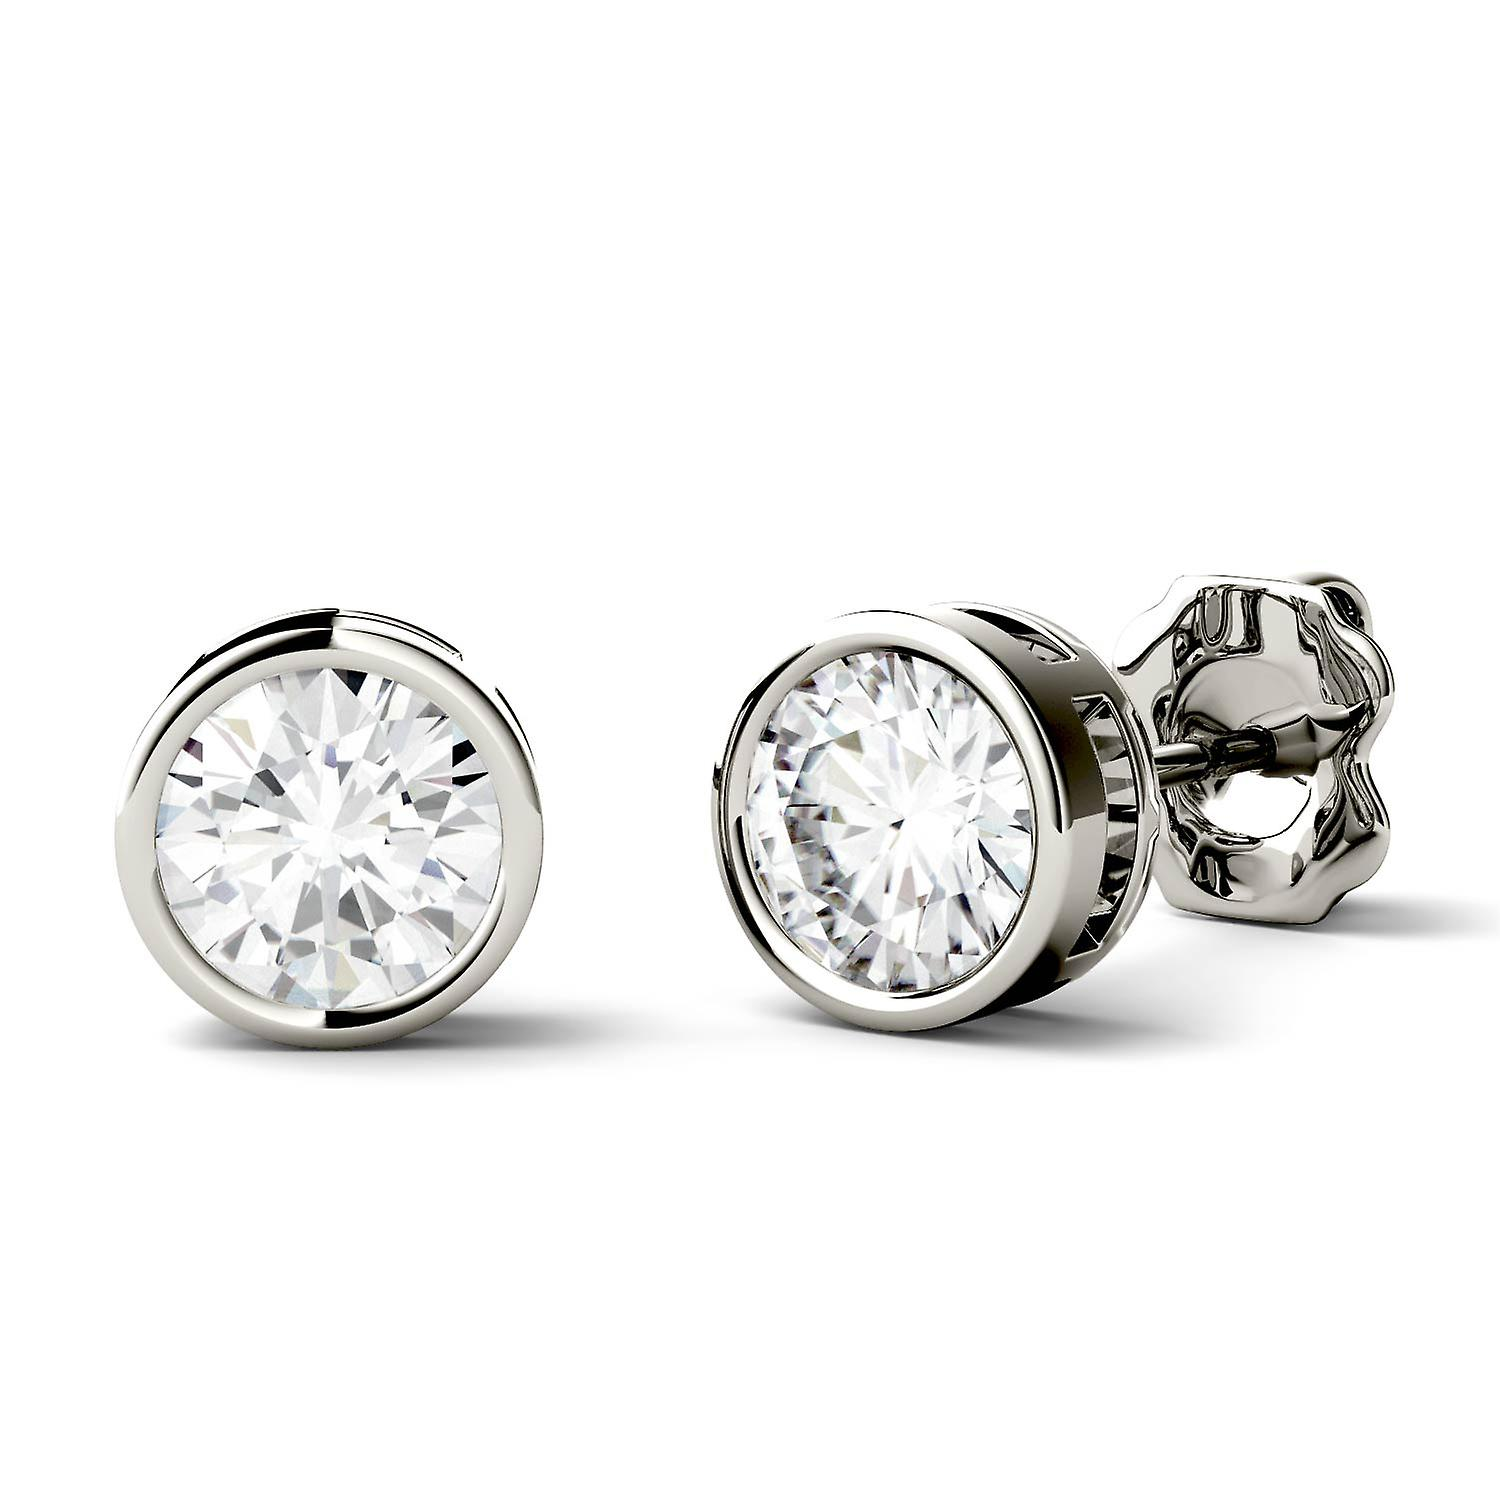 14K blanc or Moissanite by Charles & Colvard 5mm Round Stud boucles d'oreilles, 1.00cttw DEW